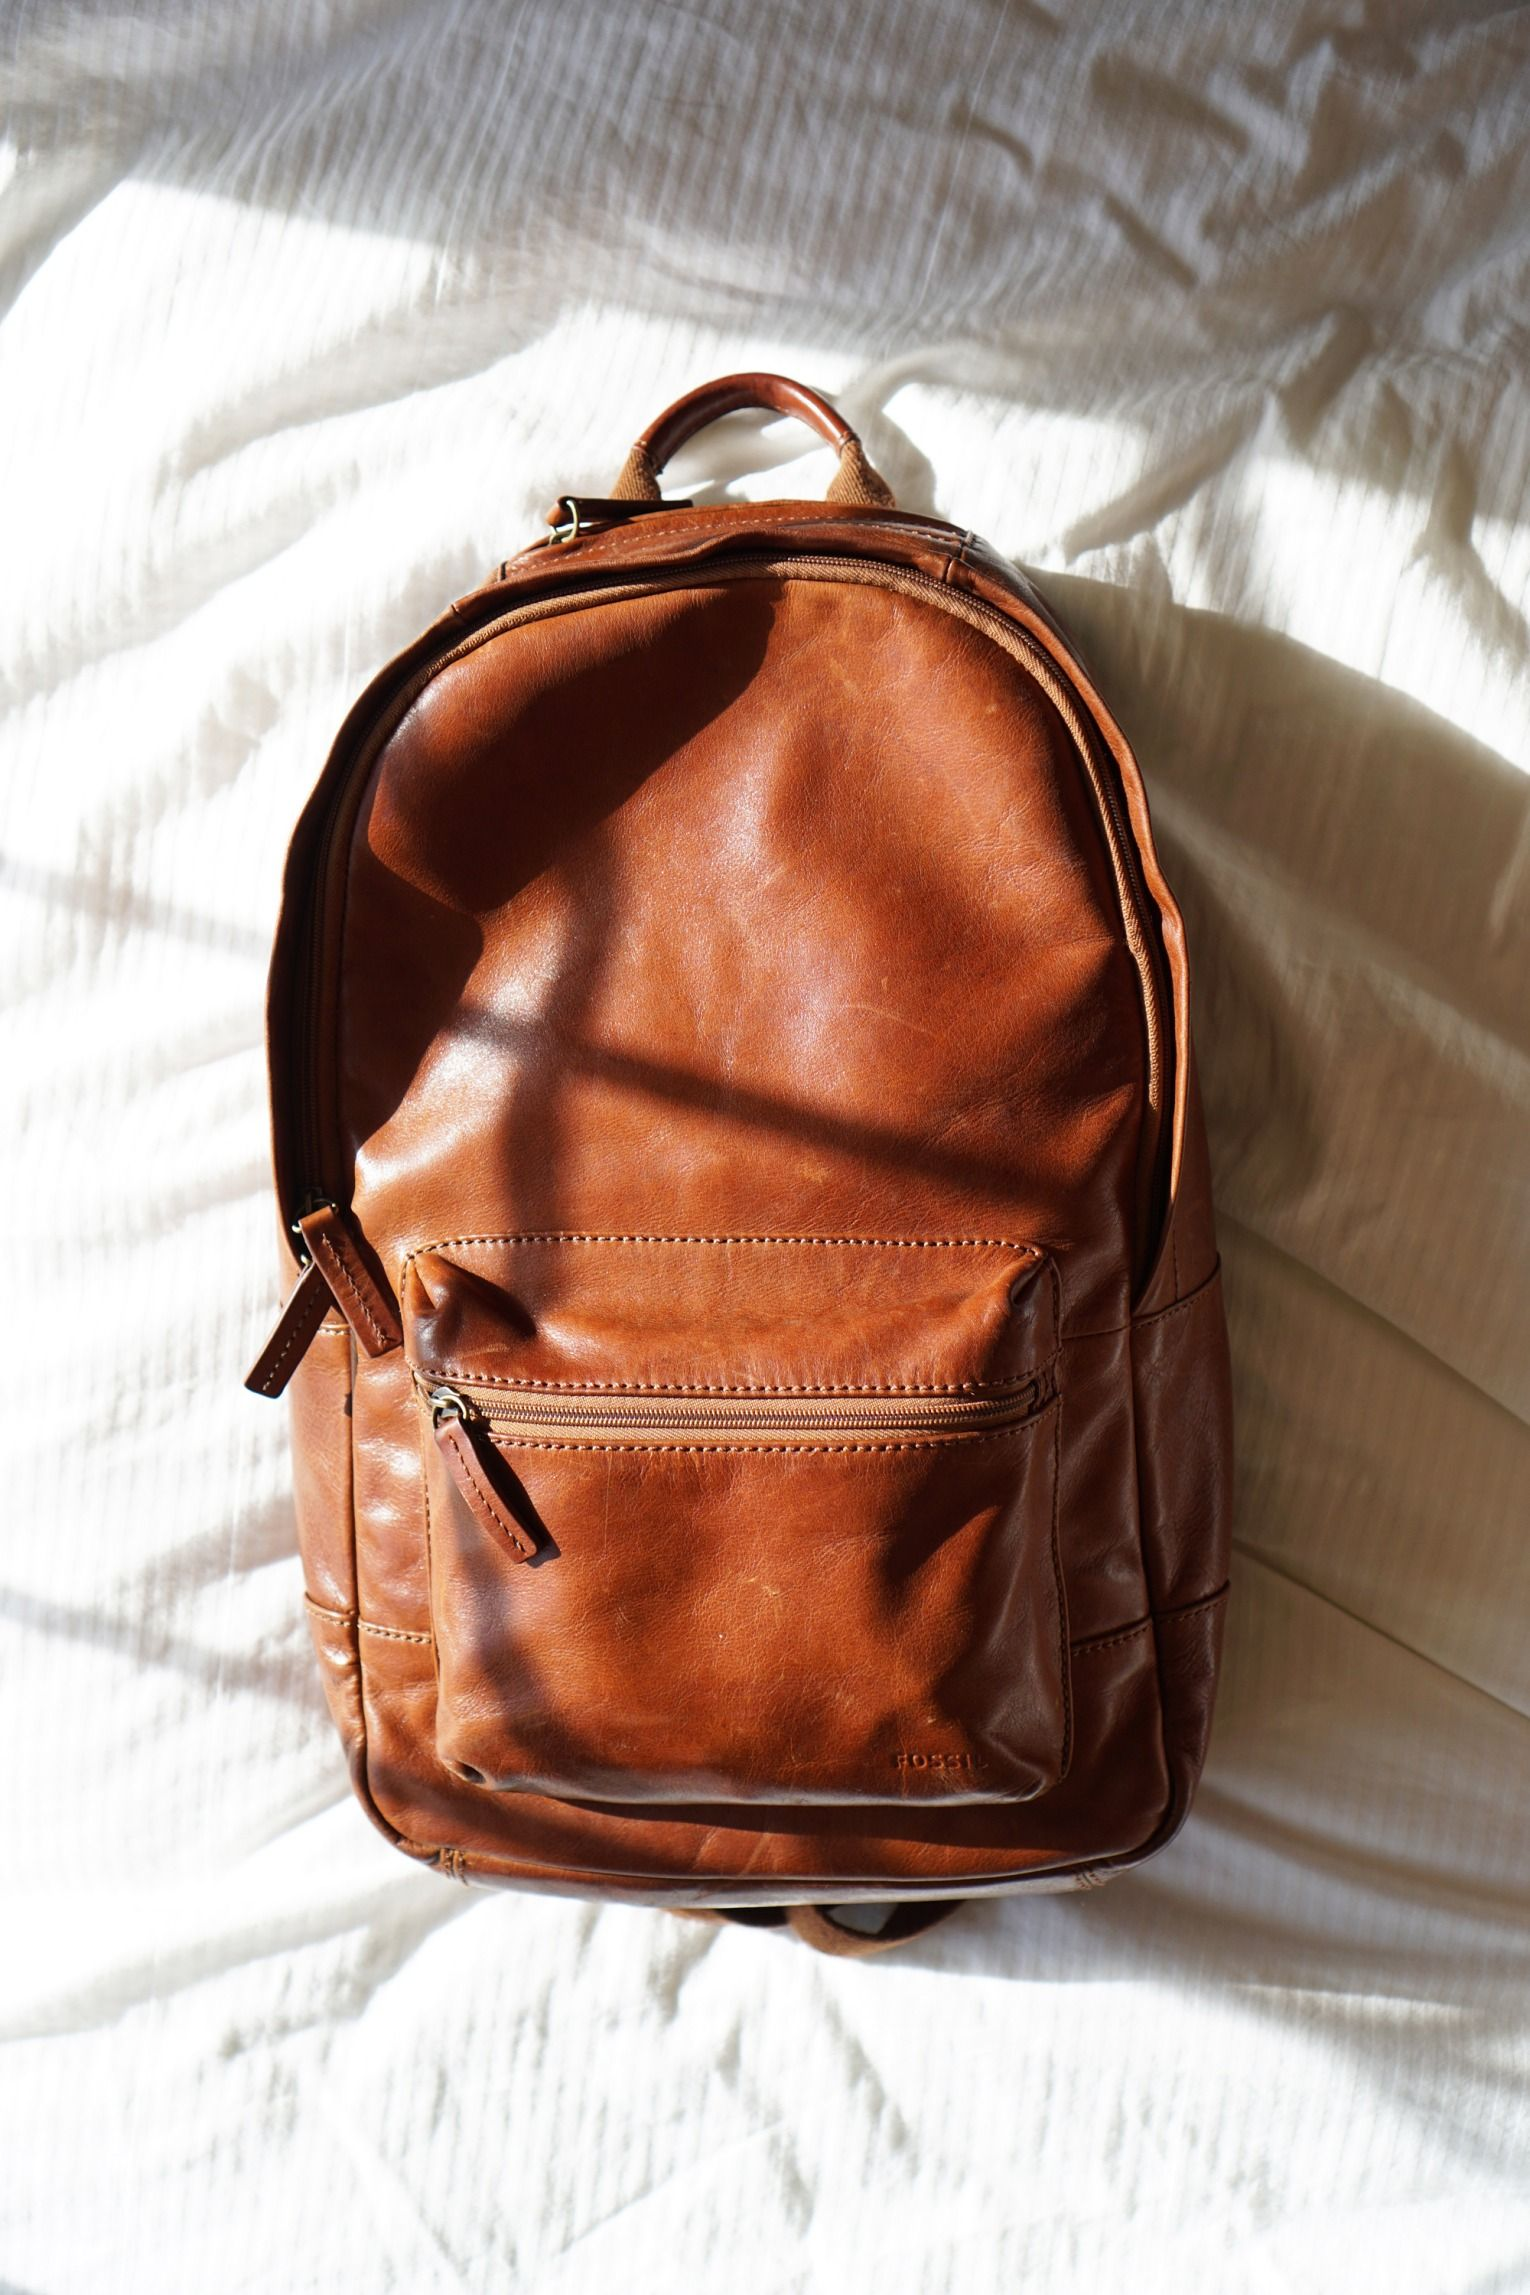 46052d2047e2 Know our leader of the pack  This Estate leather backpack will last for  years and look good doing it.